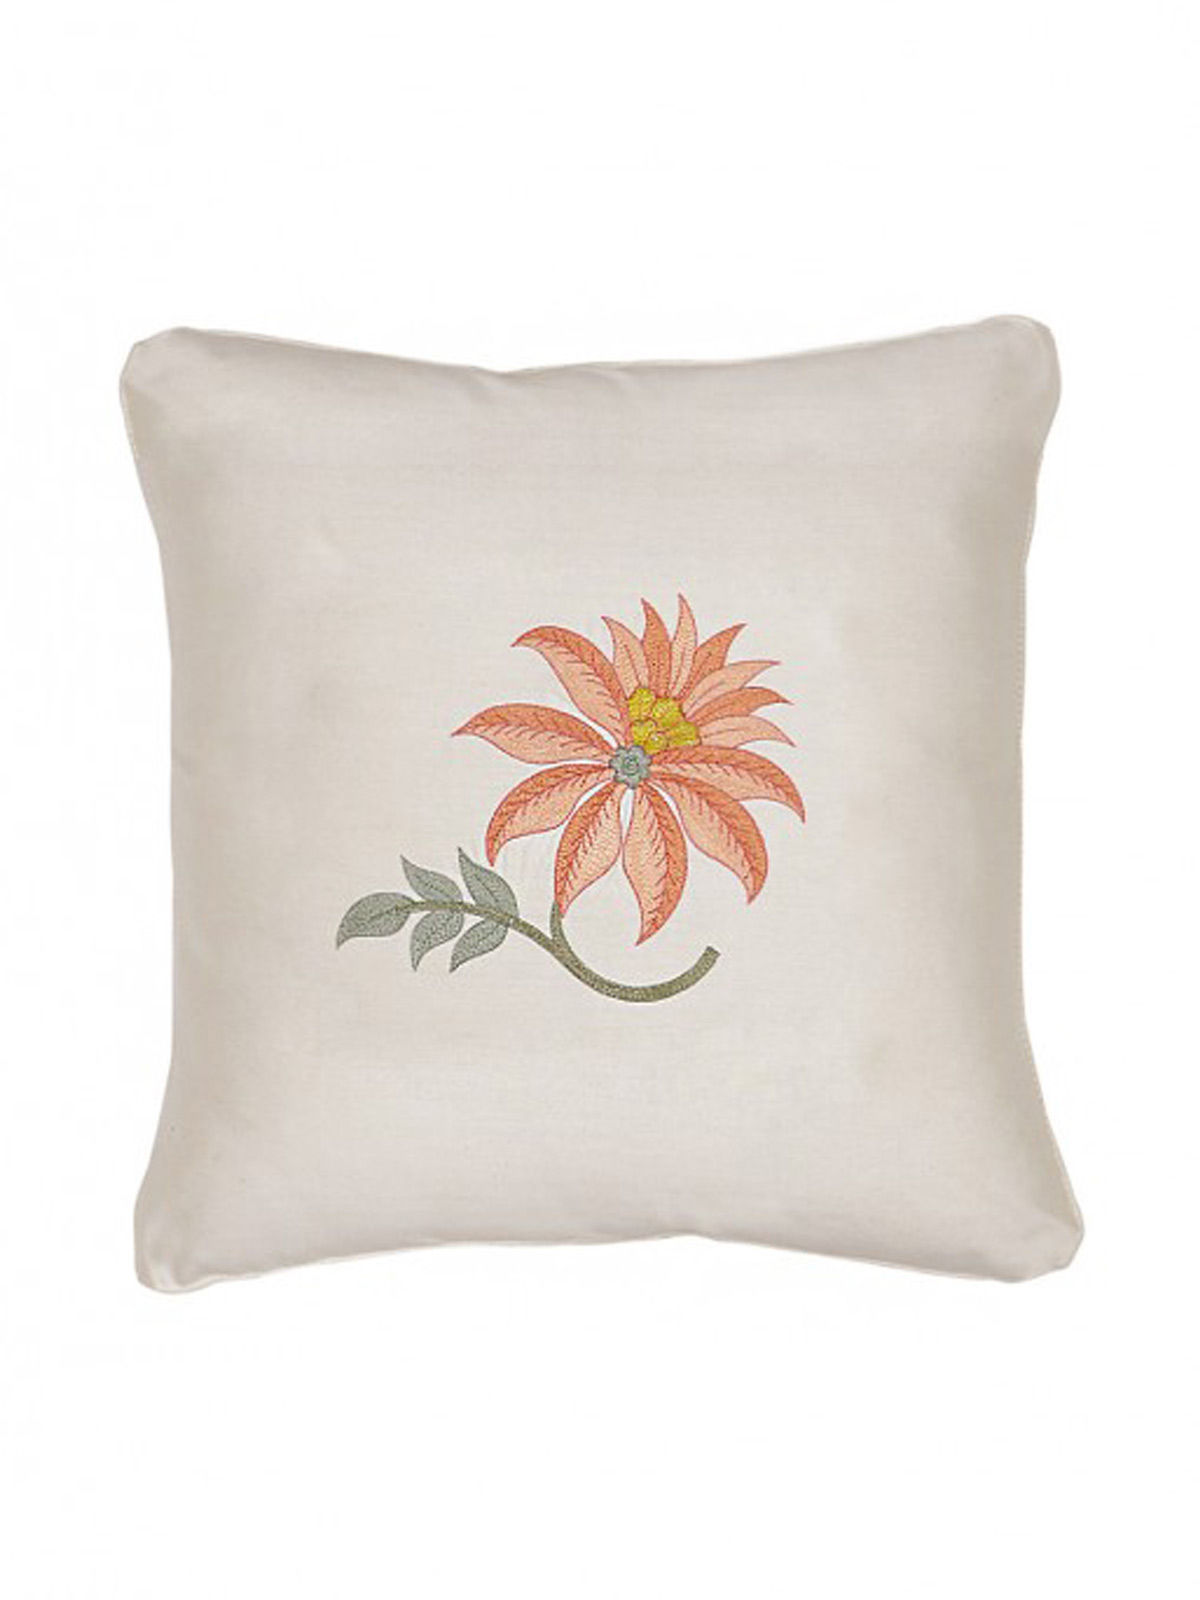 White-Rust Embroidered Silk Cushion Cover with Floral Motif